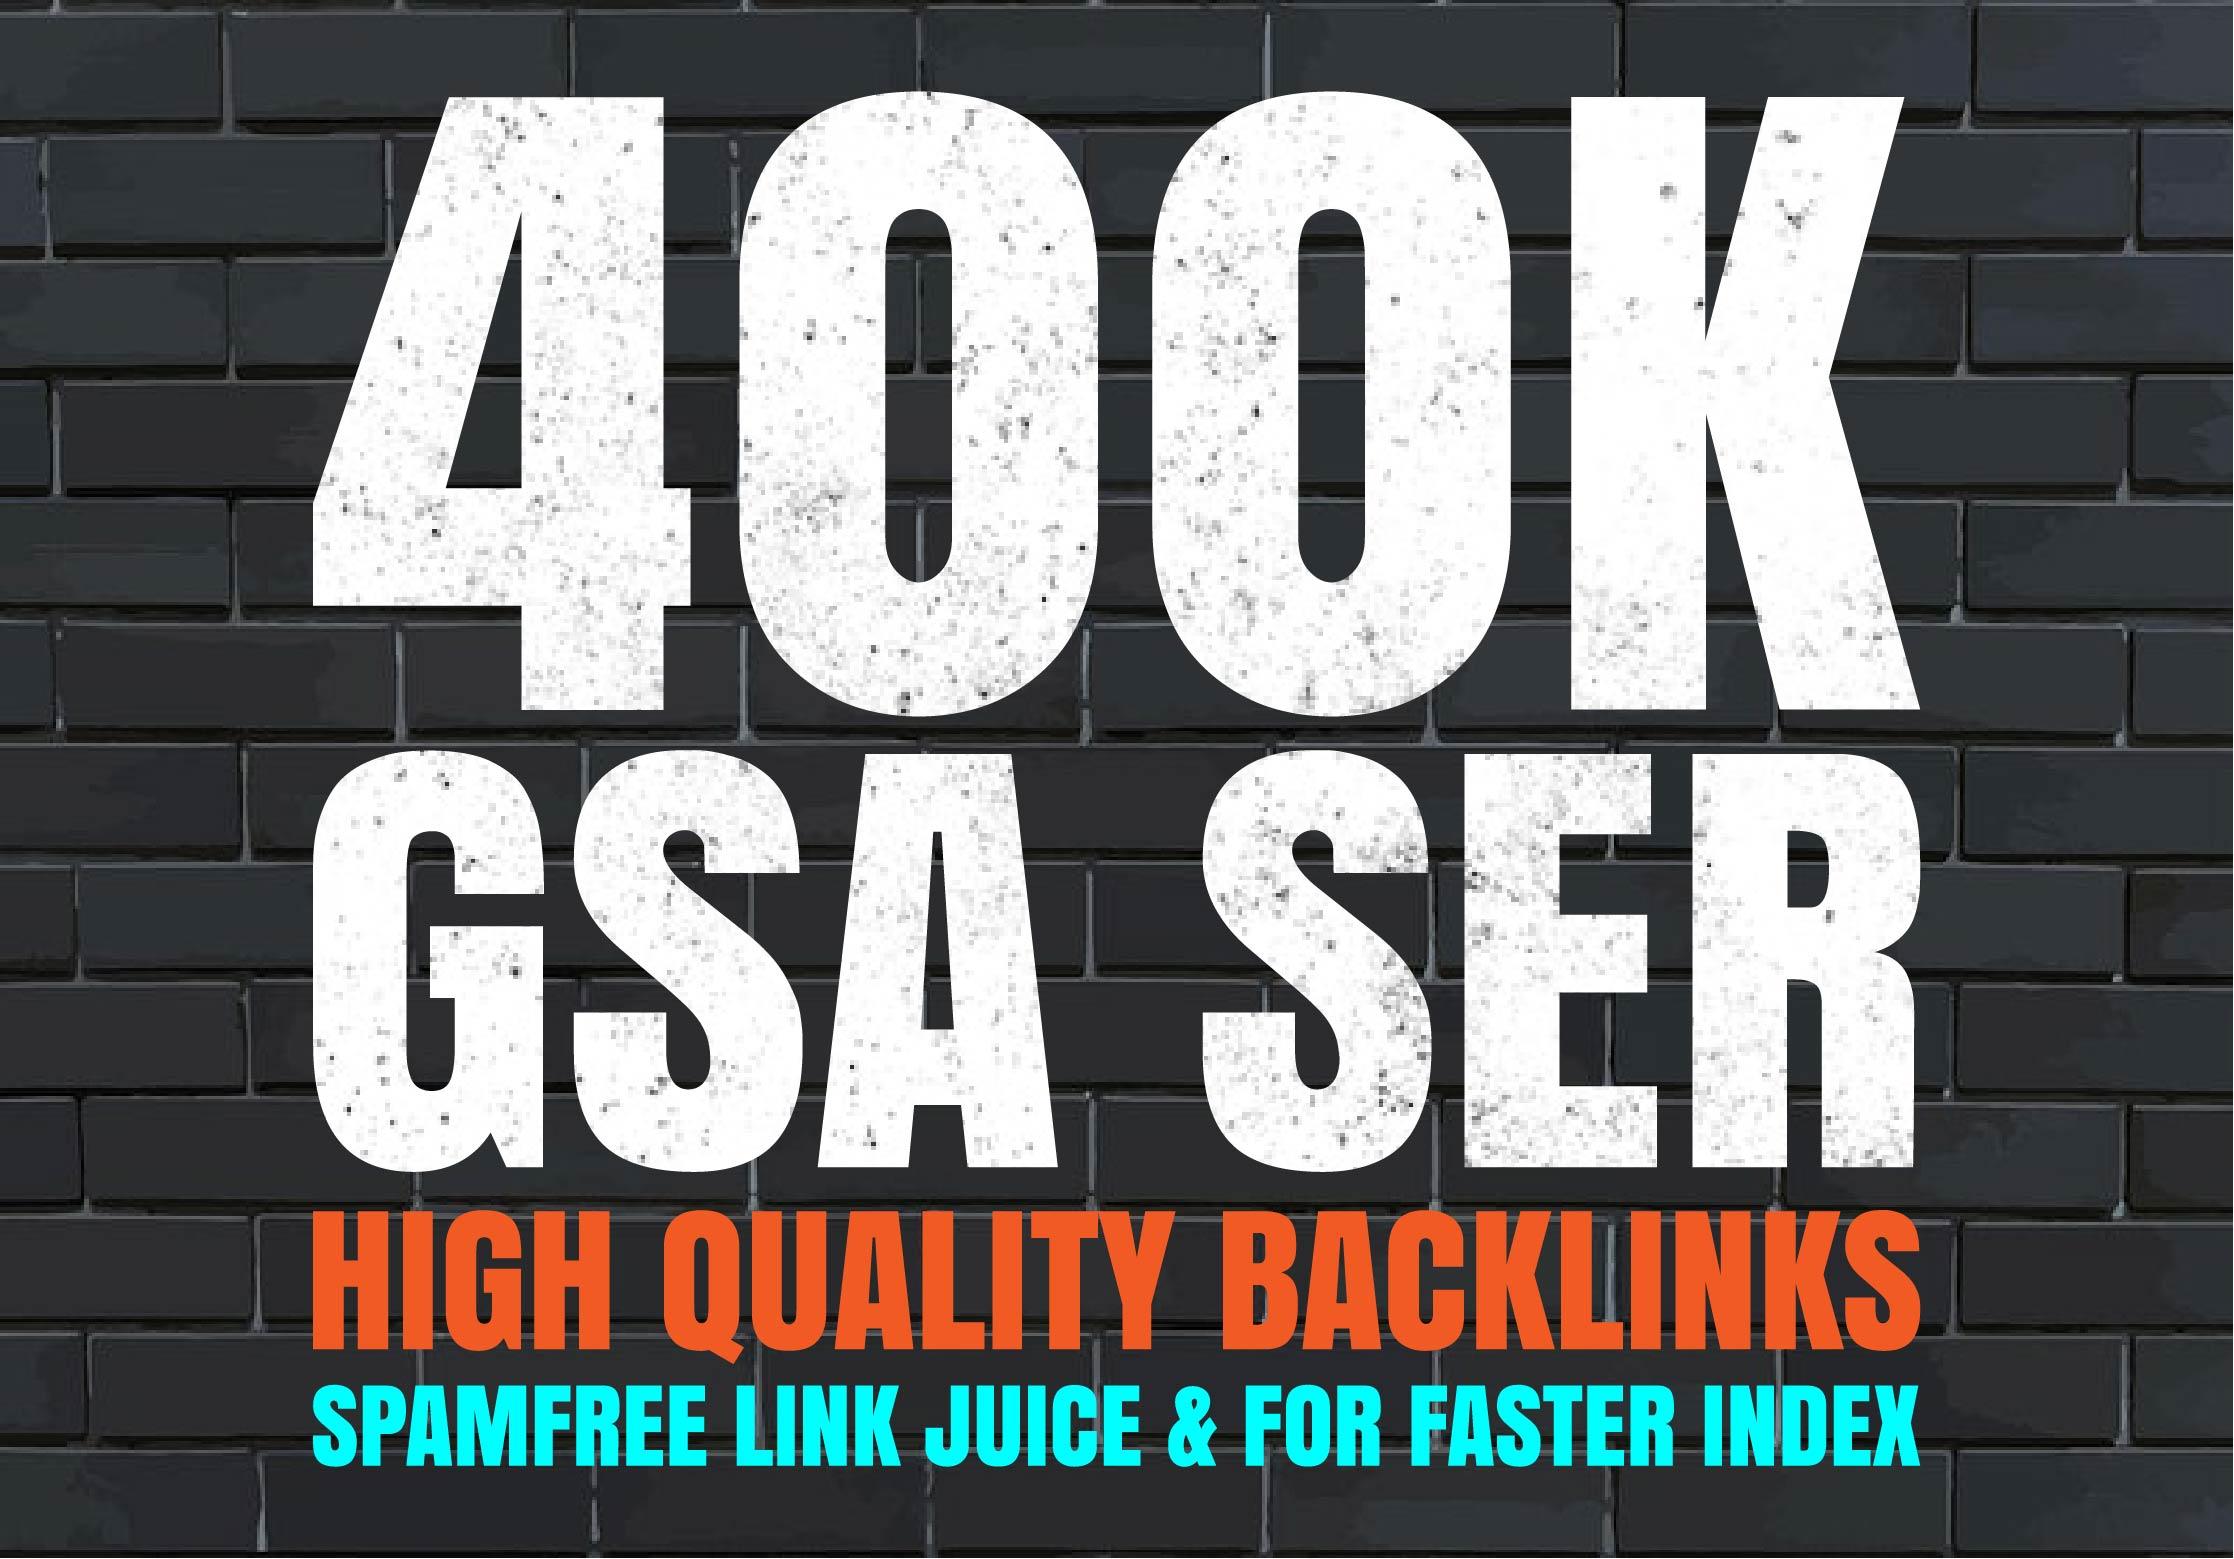 create high quality verified backlinks for your website by using GSA SER